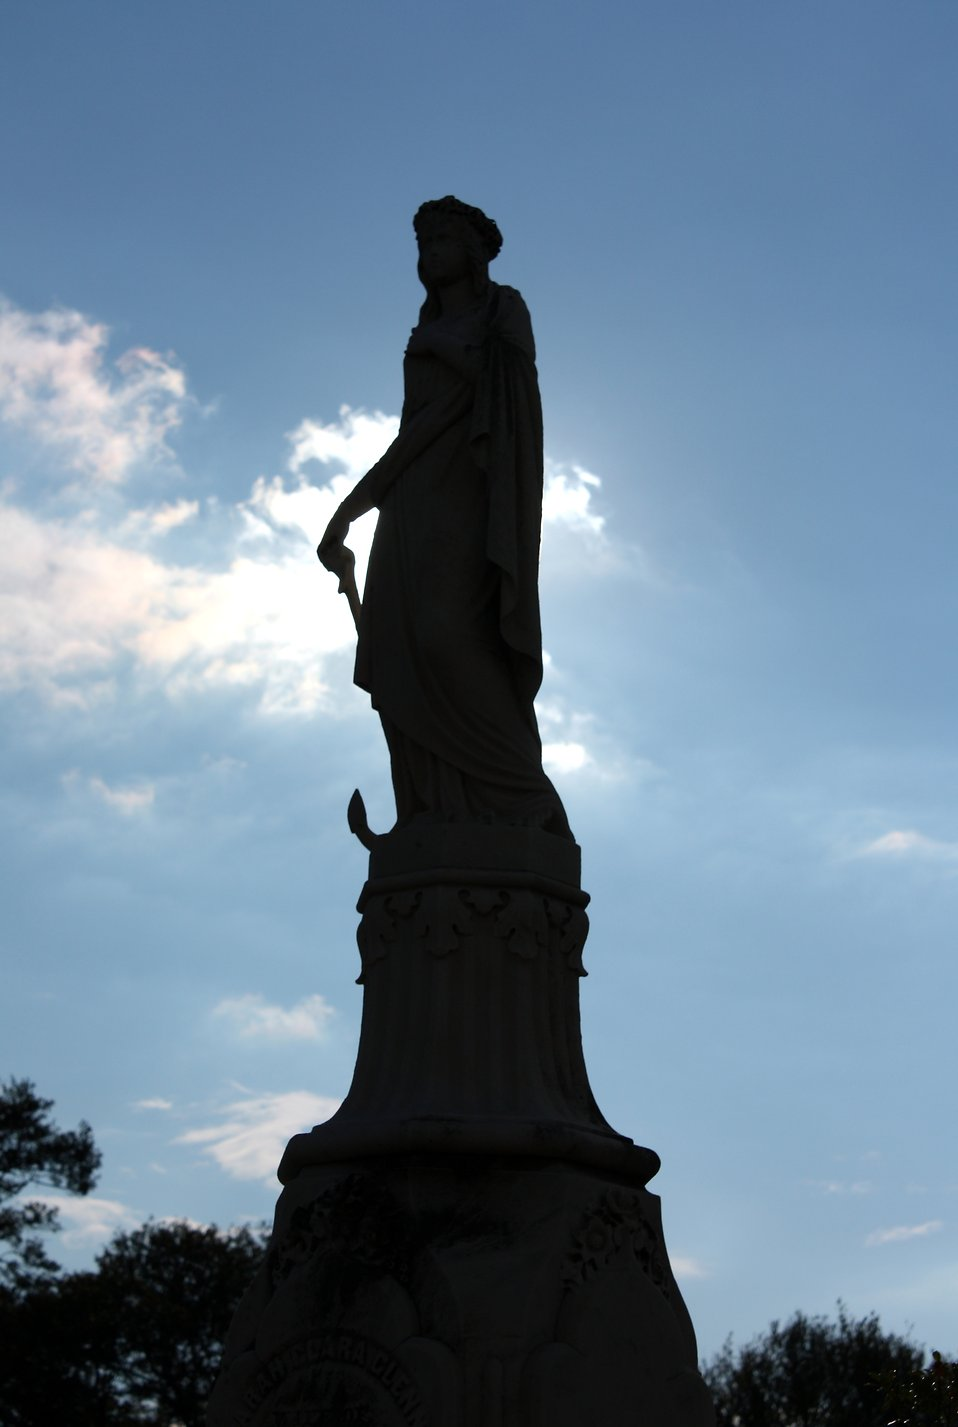 Silhouette of a large statued tombstone at historic Oakland Cemetery in Atlanta, Georgia : Free Stock Photo